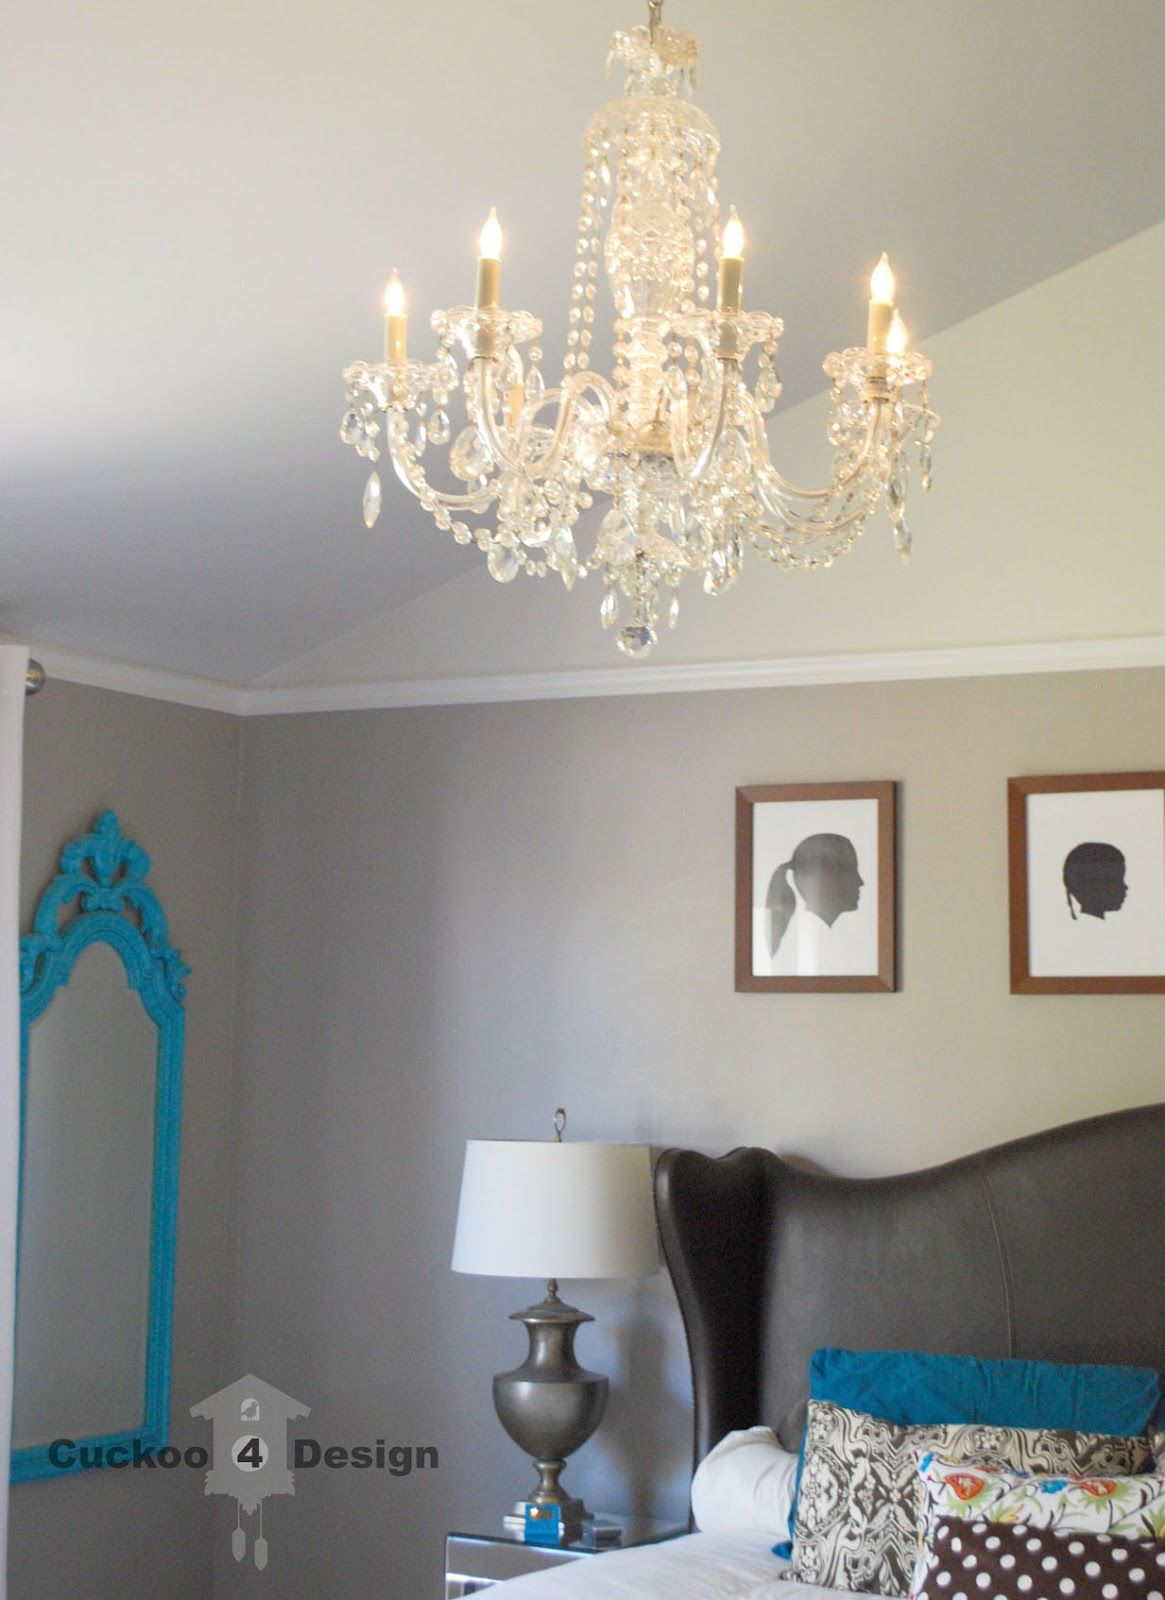 Diy crystal chandelier lighting pinterest ideas para diy crystal chandelier aloadofball Gallery